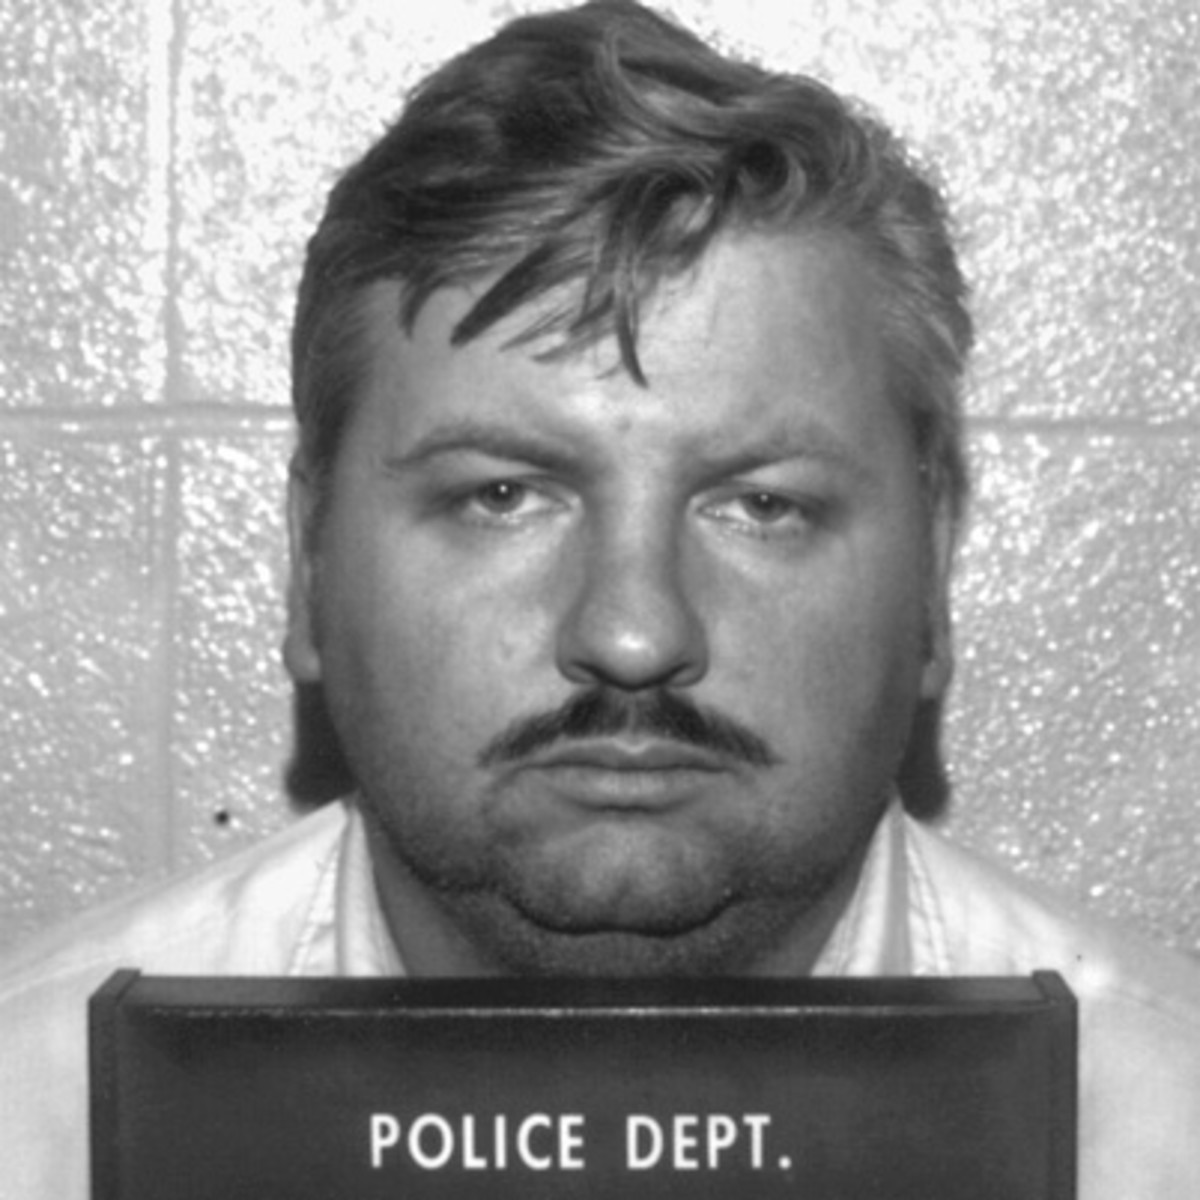 a biography of john wayne gacy jr John wayne gacy biography murderer name at birth: john wayne gacy, jr john wayne gacy was one of the most famous serial killers to come out of the 1970s, a part-time clown who murdered 33 young men and boys and hid their corpses in the crawlspaces of his house.